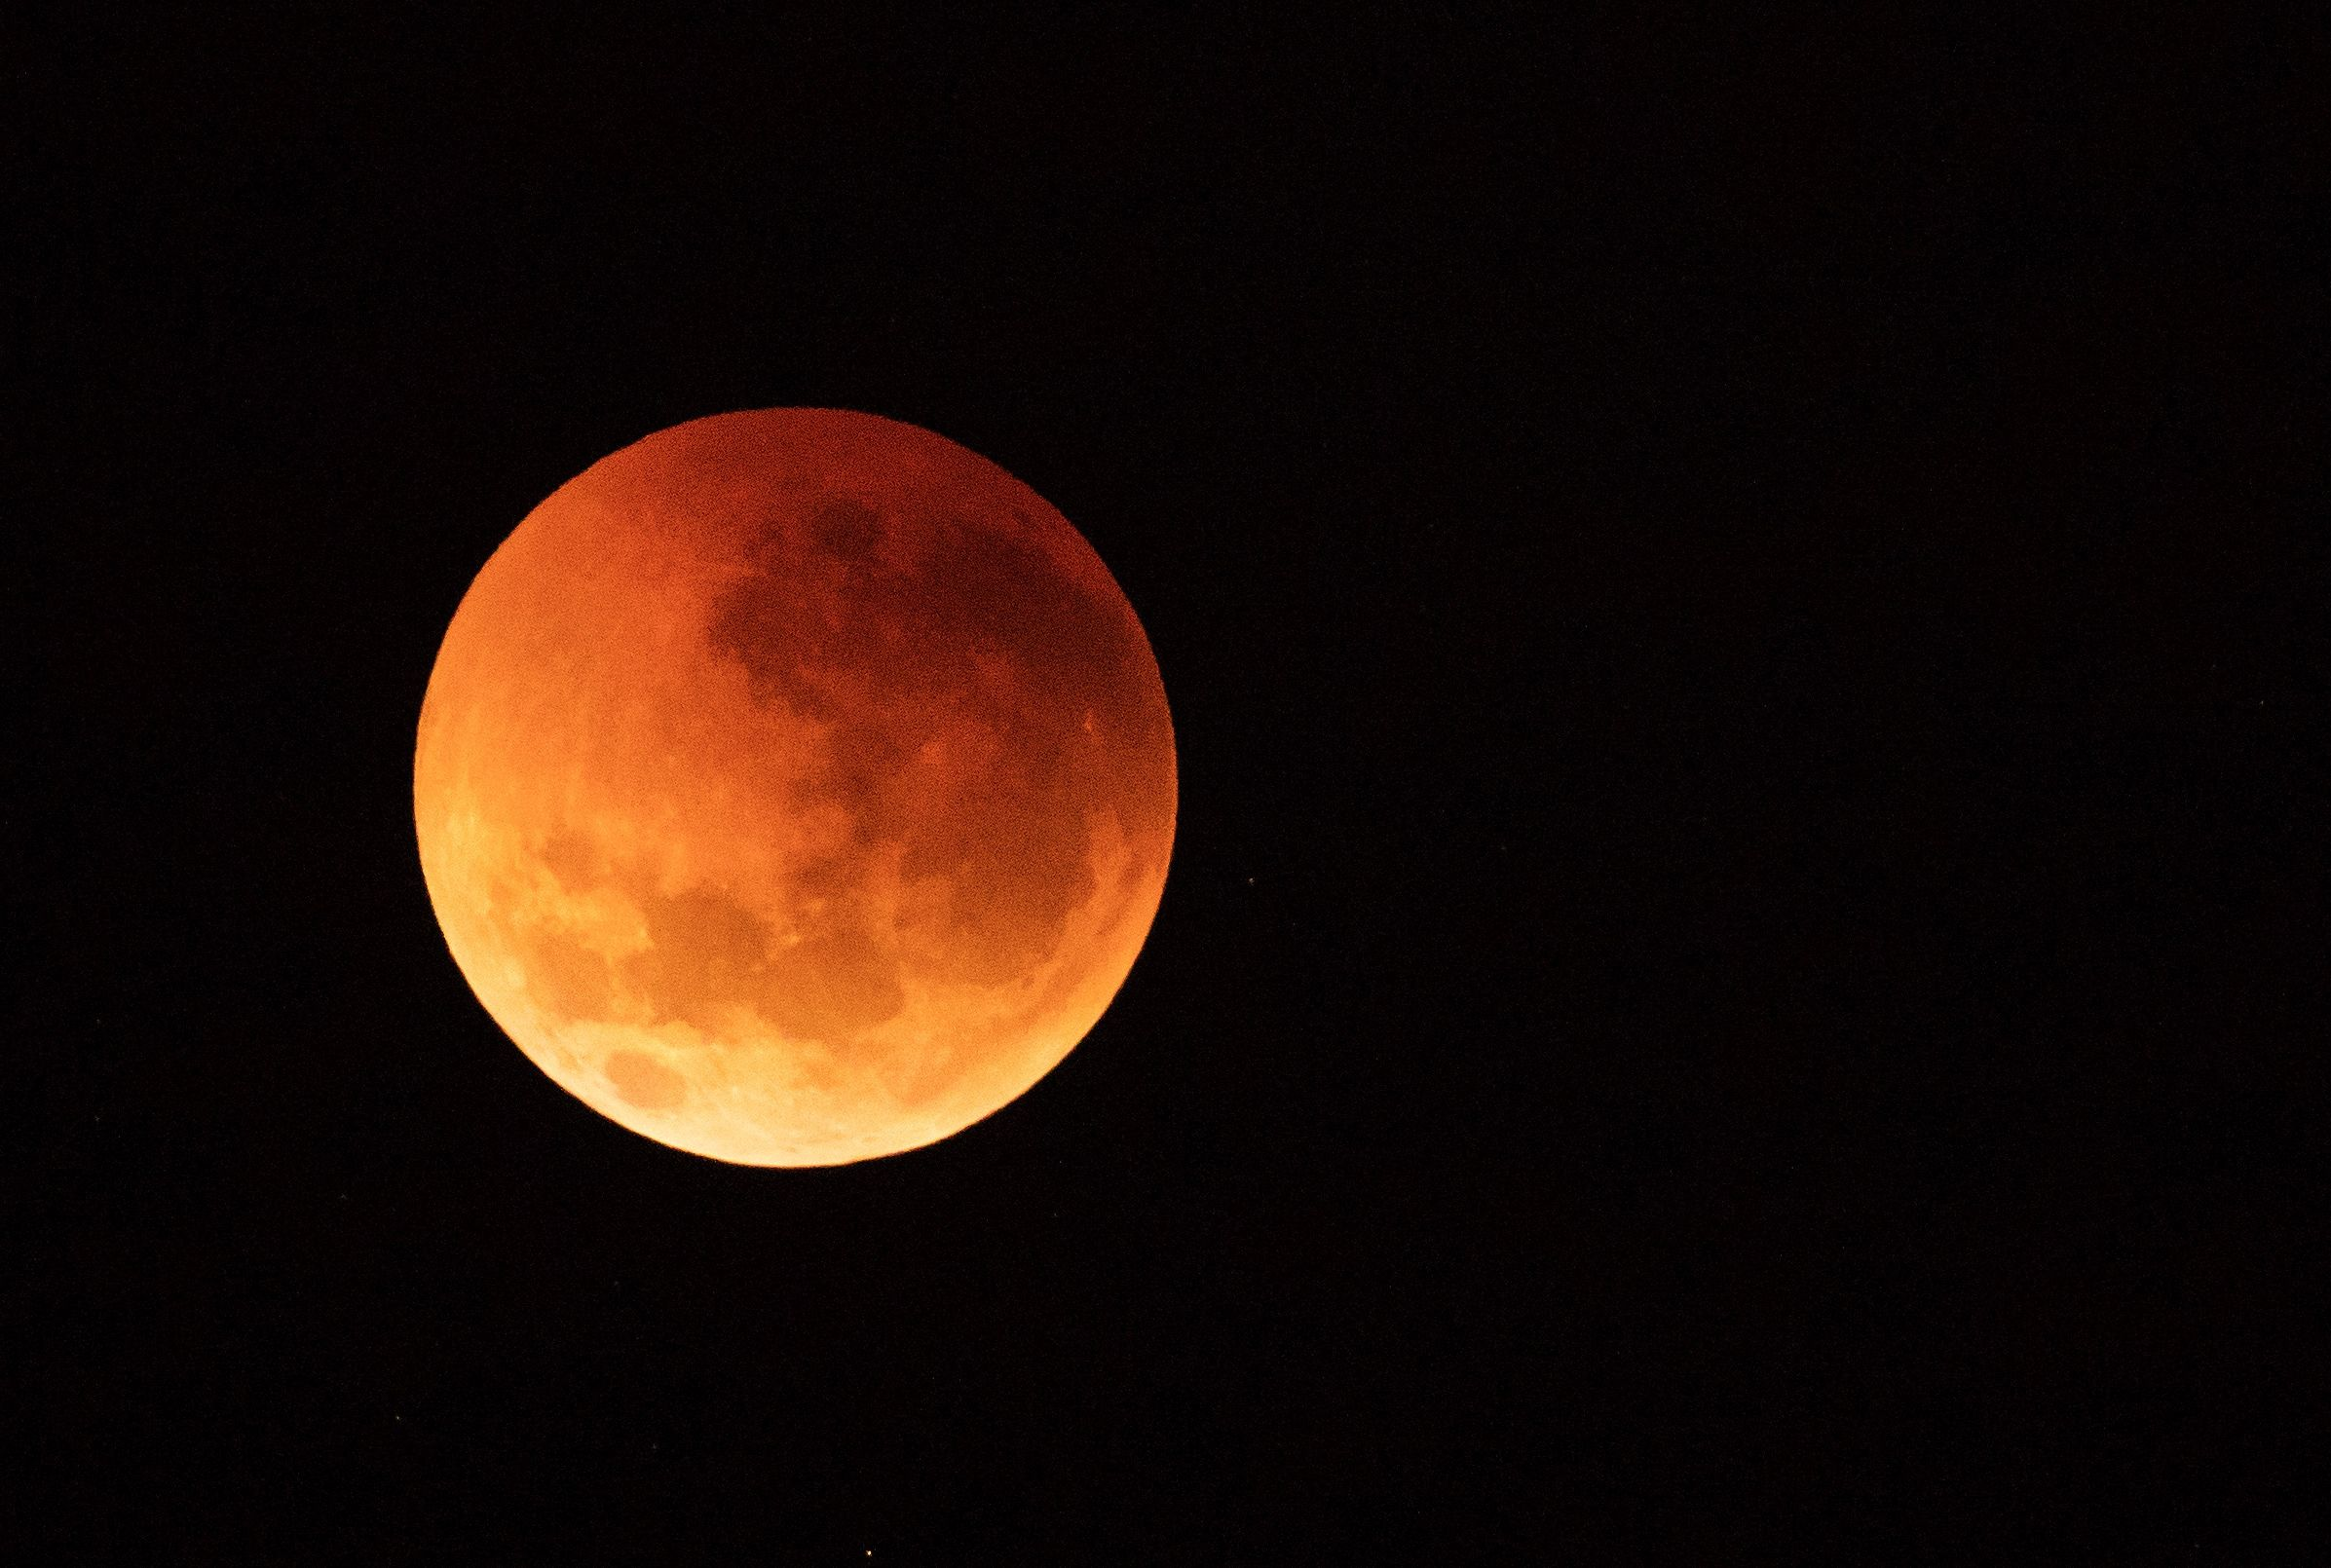 Mark Your Calendars: A Rare Super Blood Wolf Moon Is Coming in